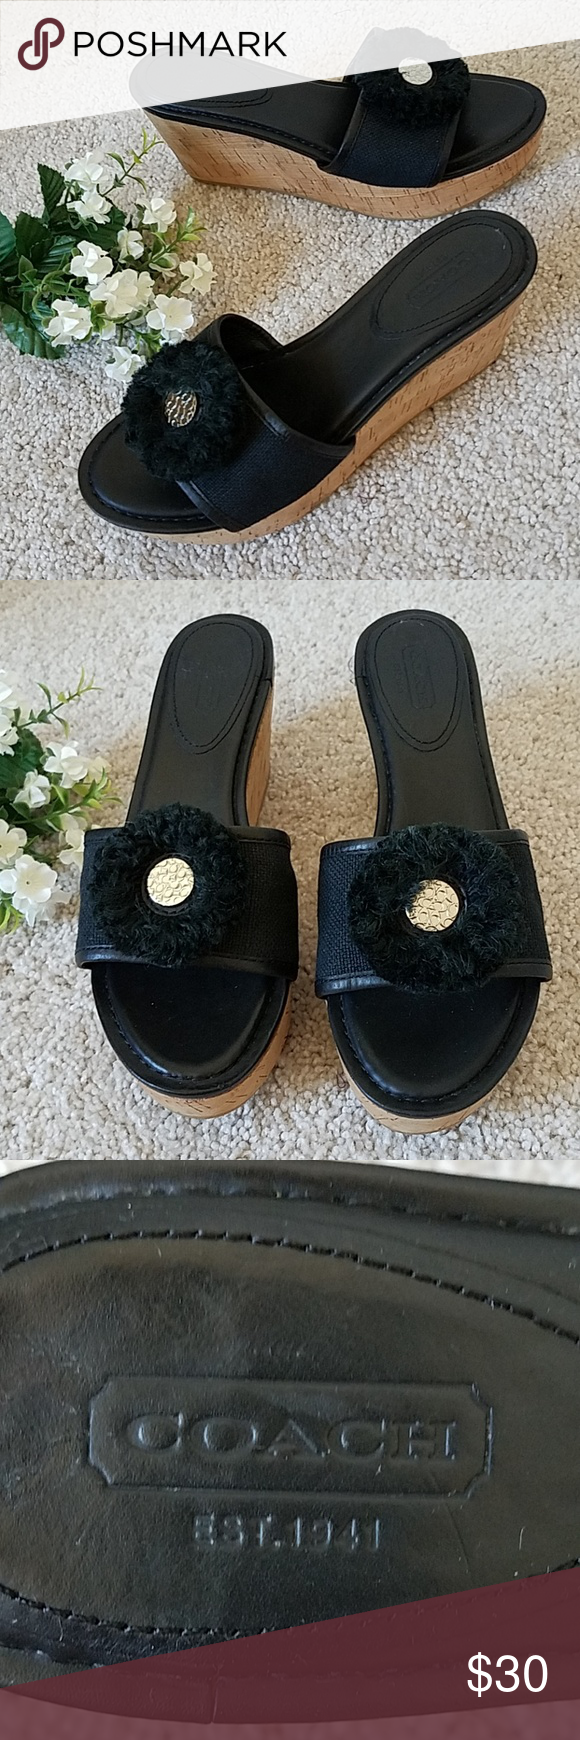 ae98452d44 Coach Jazmin Cork Wedge Sandals 🌿 💚 Coach slip-on wedge sandals features  canvas with leather trim and insole, raffia rosette with gold decorative  button, ...